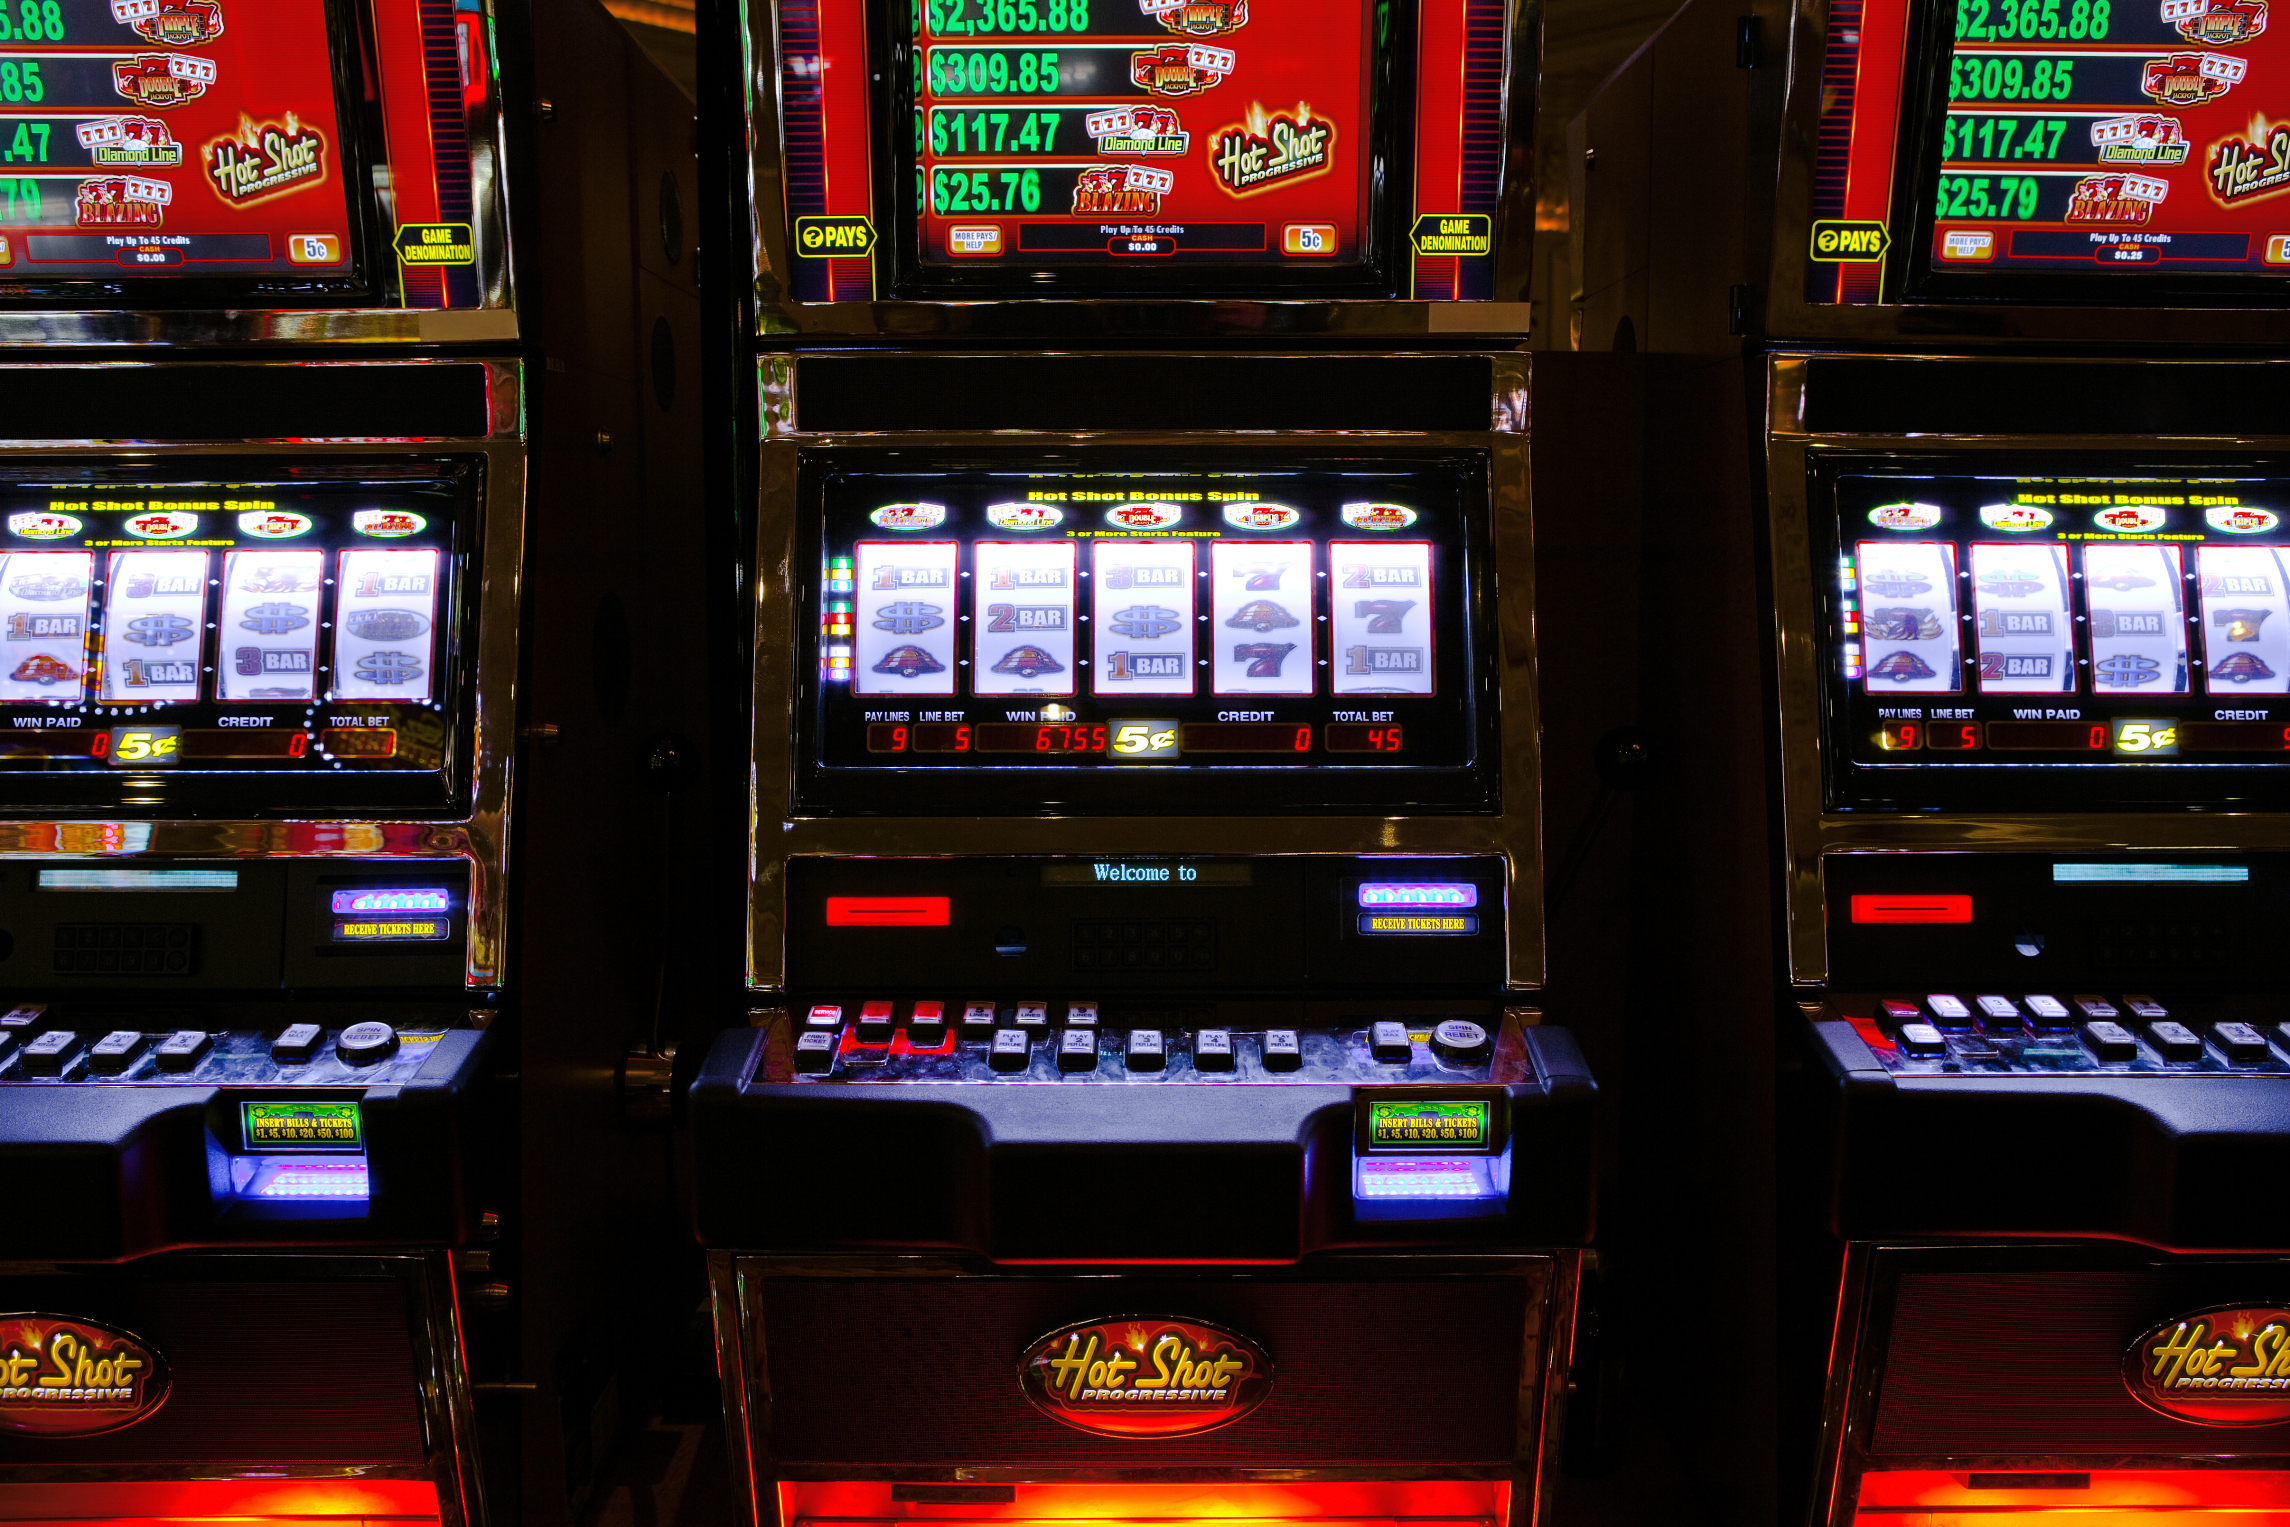 Slot machine with best payout